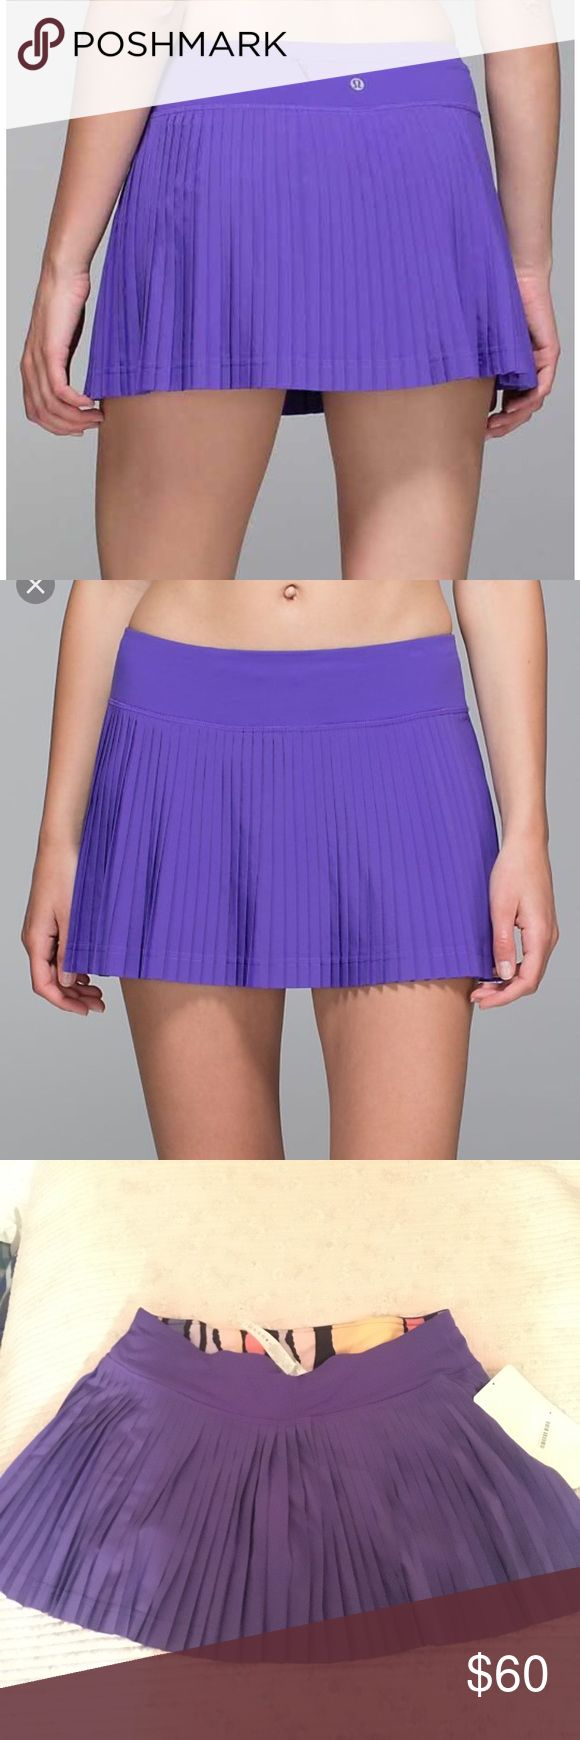 """Lululemon Pleat To Street Skirt (Skort) II NWT Lululemon brand, BNWT, """"Pleat To Street"""" Skirt with built in shorts, size 6.  Bought for golf or tennis but it's too big for me :(   Designed to take us straight from sweat dates to coffee dates! Swift Ultra Light fabric is lightweight and sweat-wicking with four way stretch. Wide Light Luxtreme fabric waistband lies flat under your Top. Built in Light Luxtreme fabric liner with silicone grip at hem and pockets. Signature 3 pocket waistband with…"""